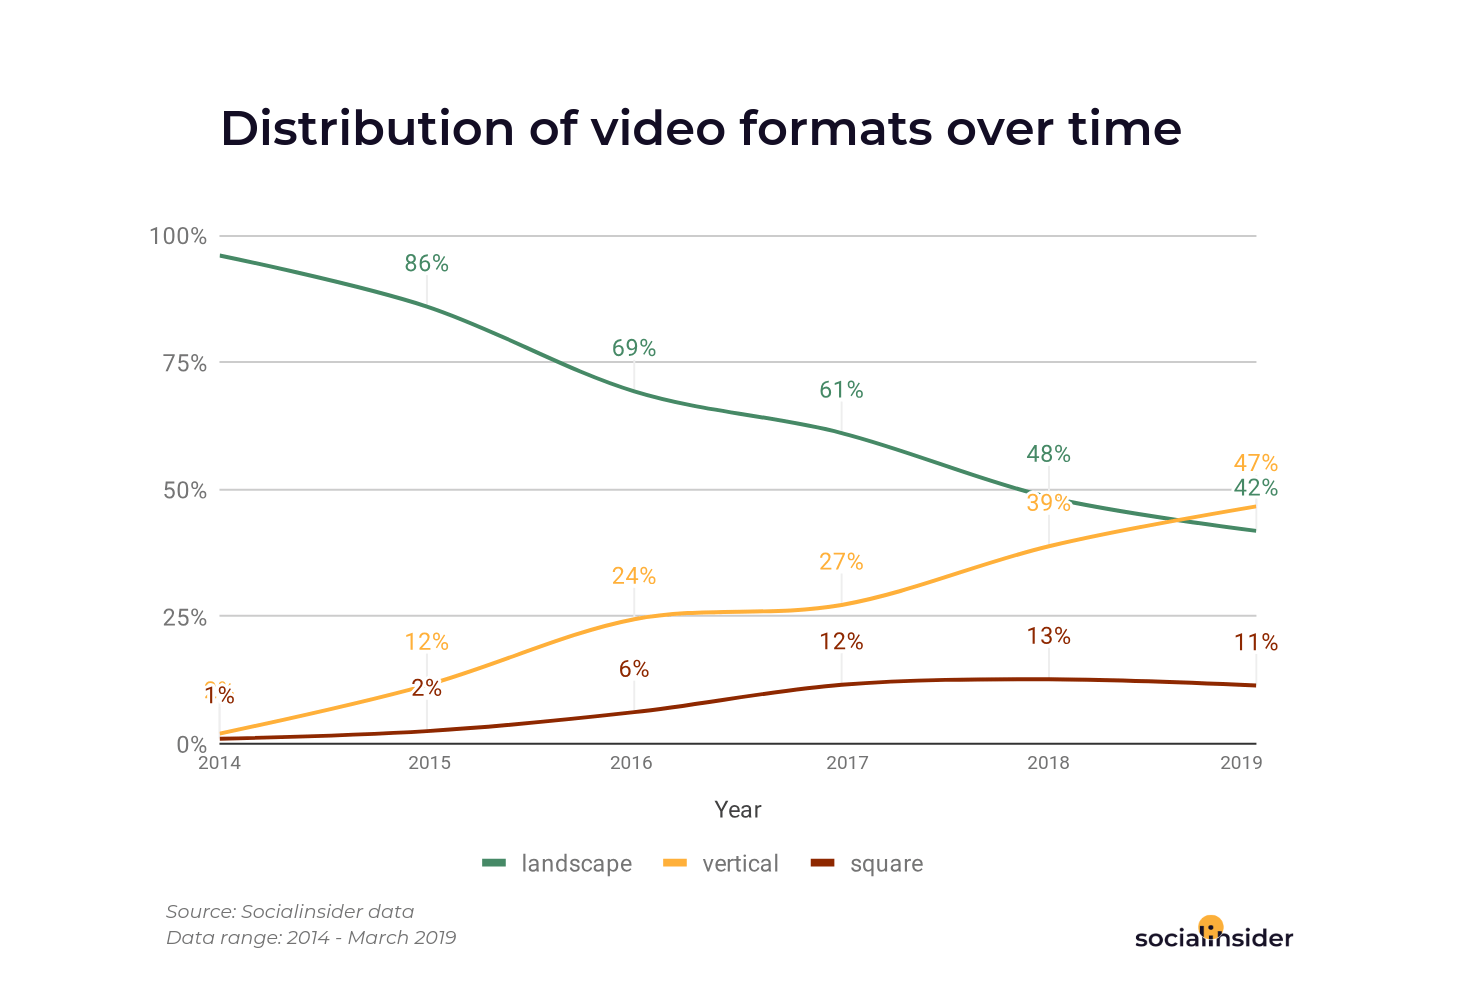 You can see here the distribution of video formats from 2014 to 2019 on Facebook